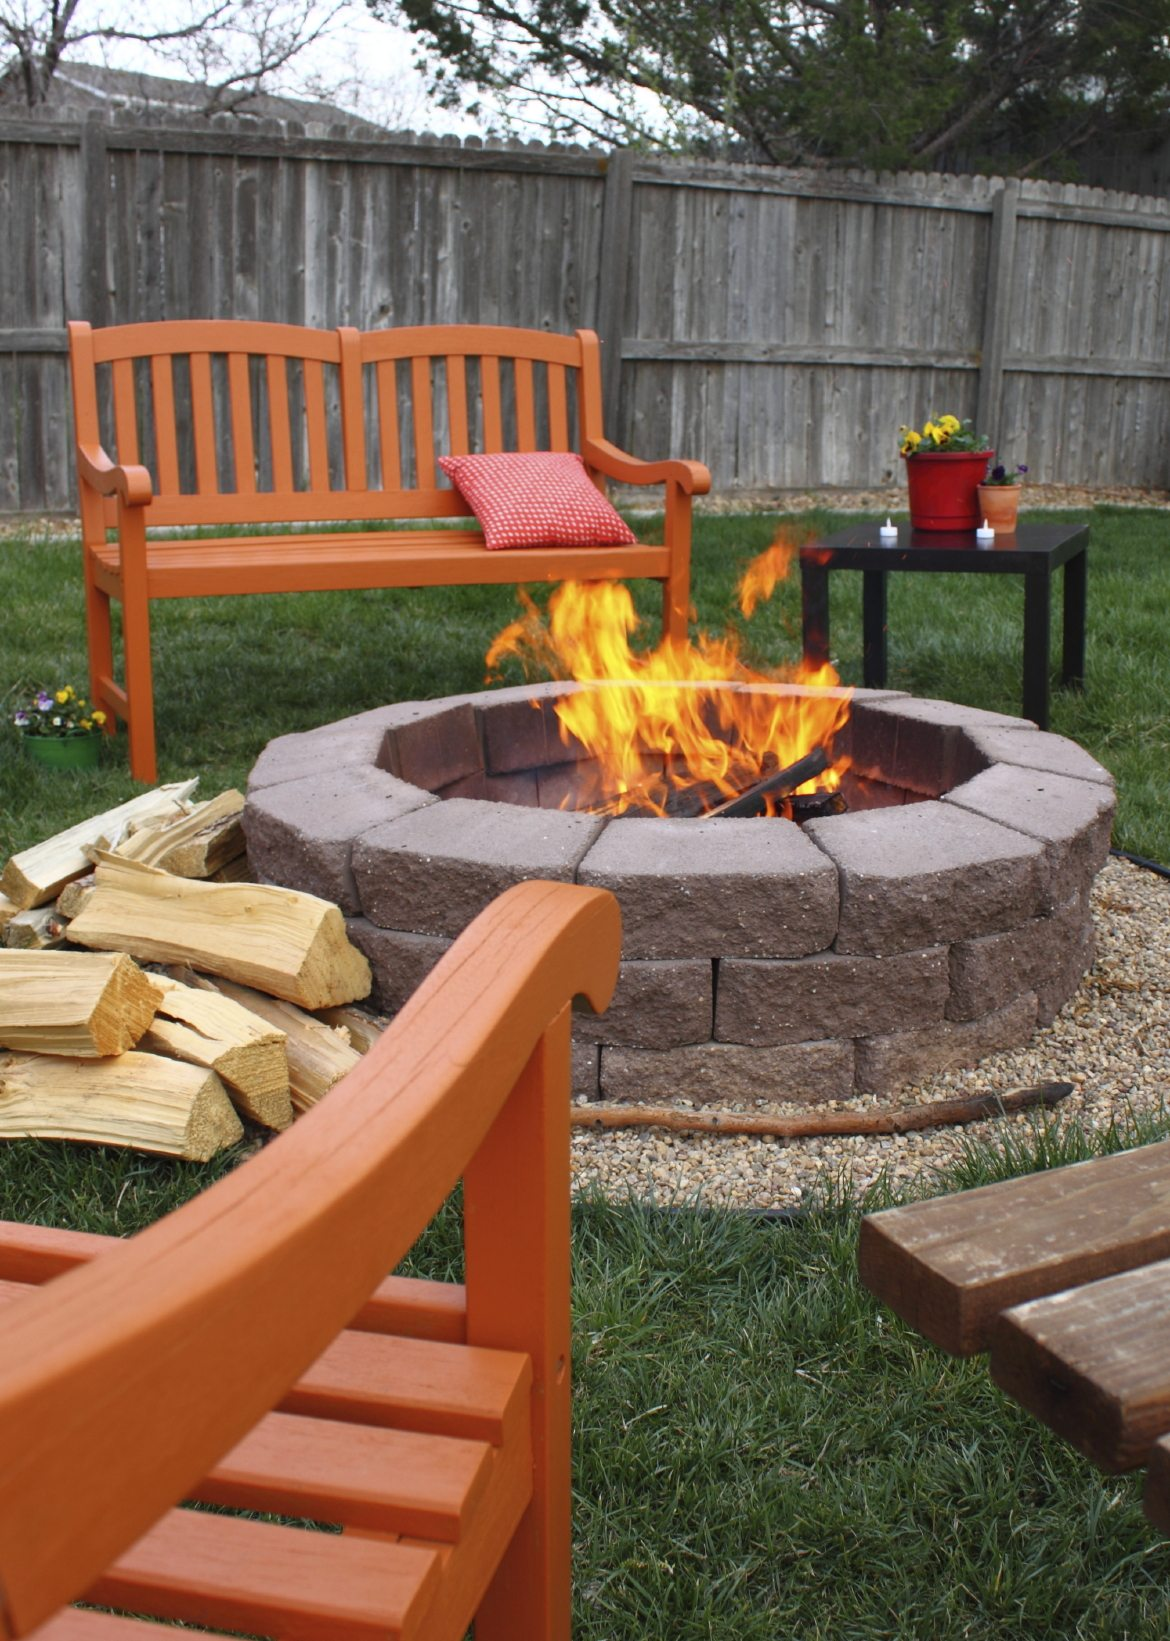 Using Fire Pits In Gardens - Tips On Building A Backyard Fire Pit